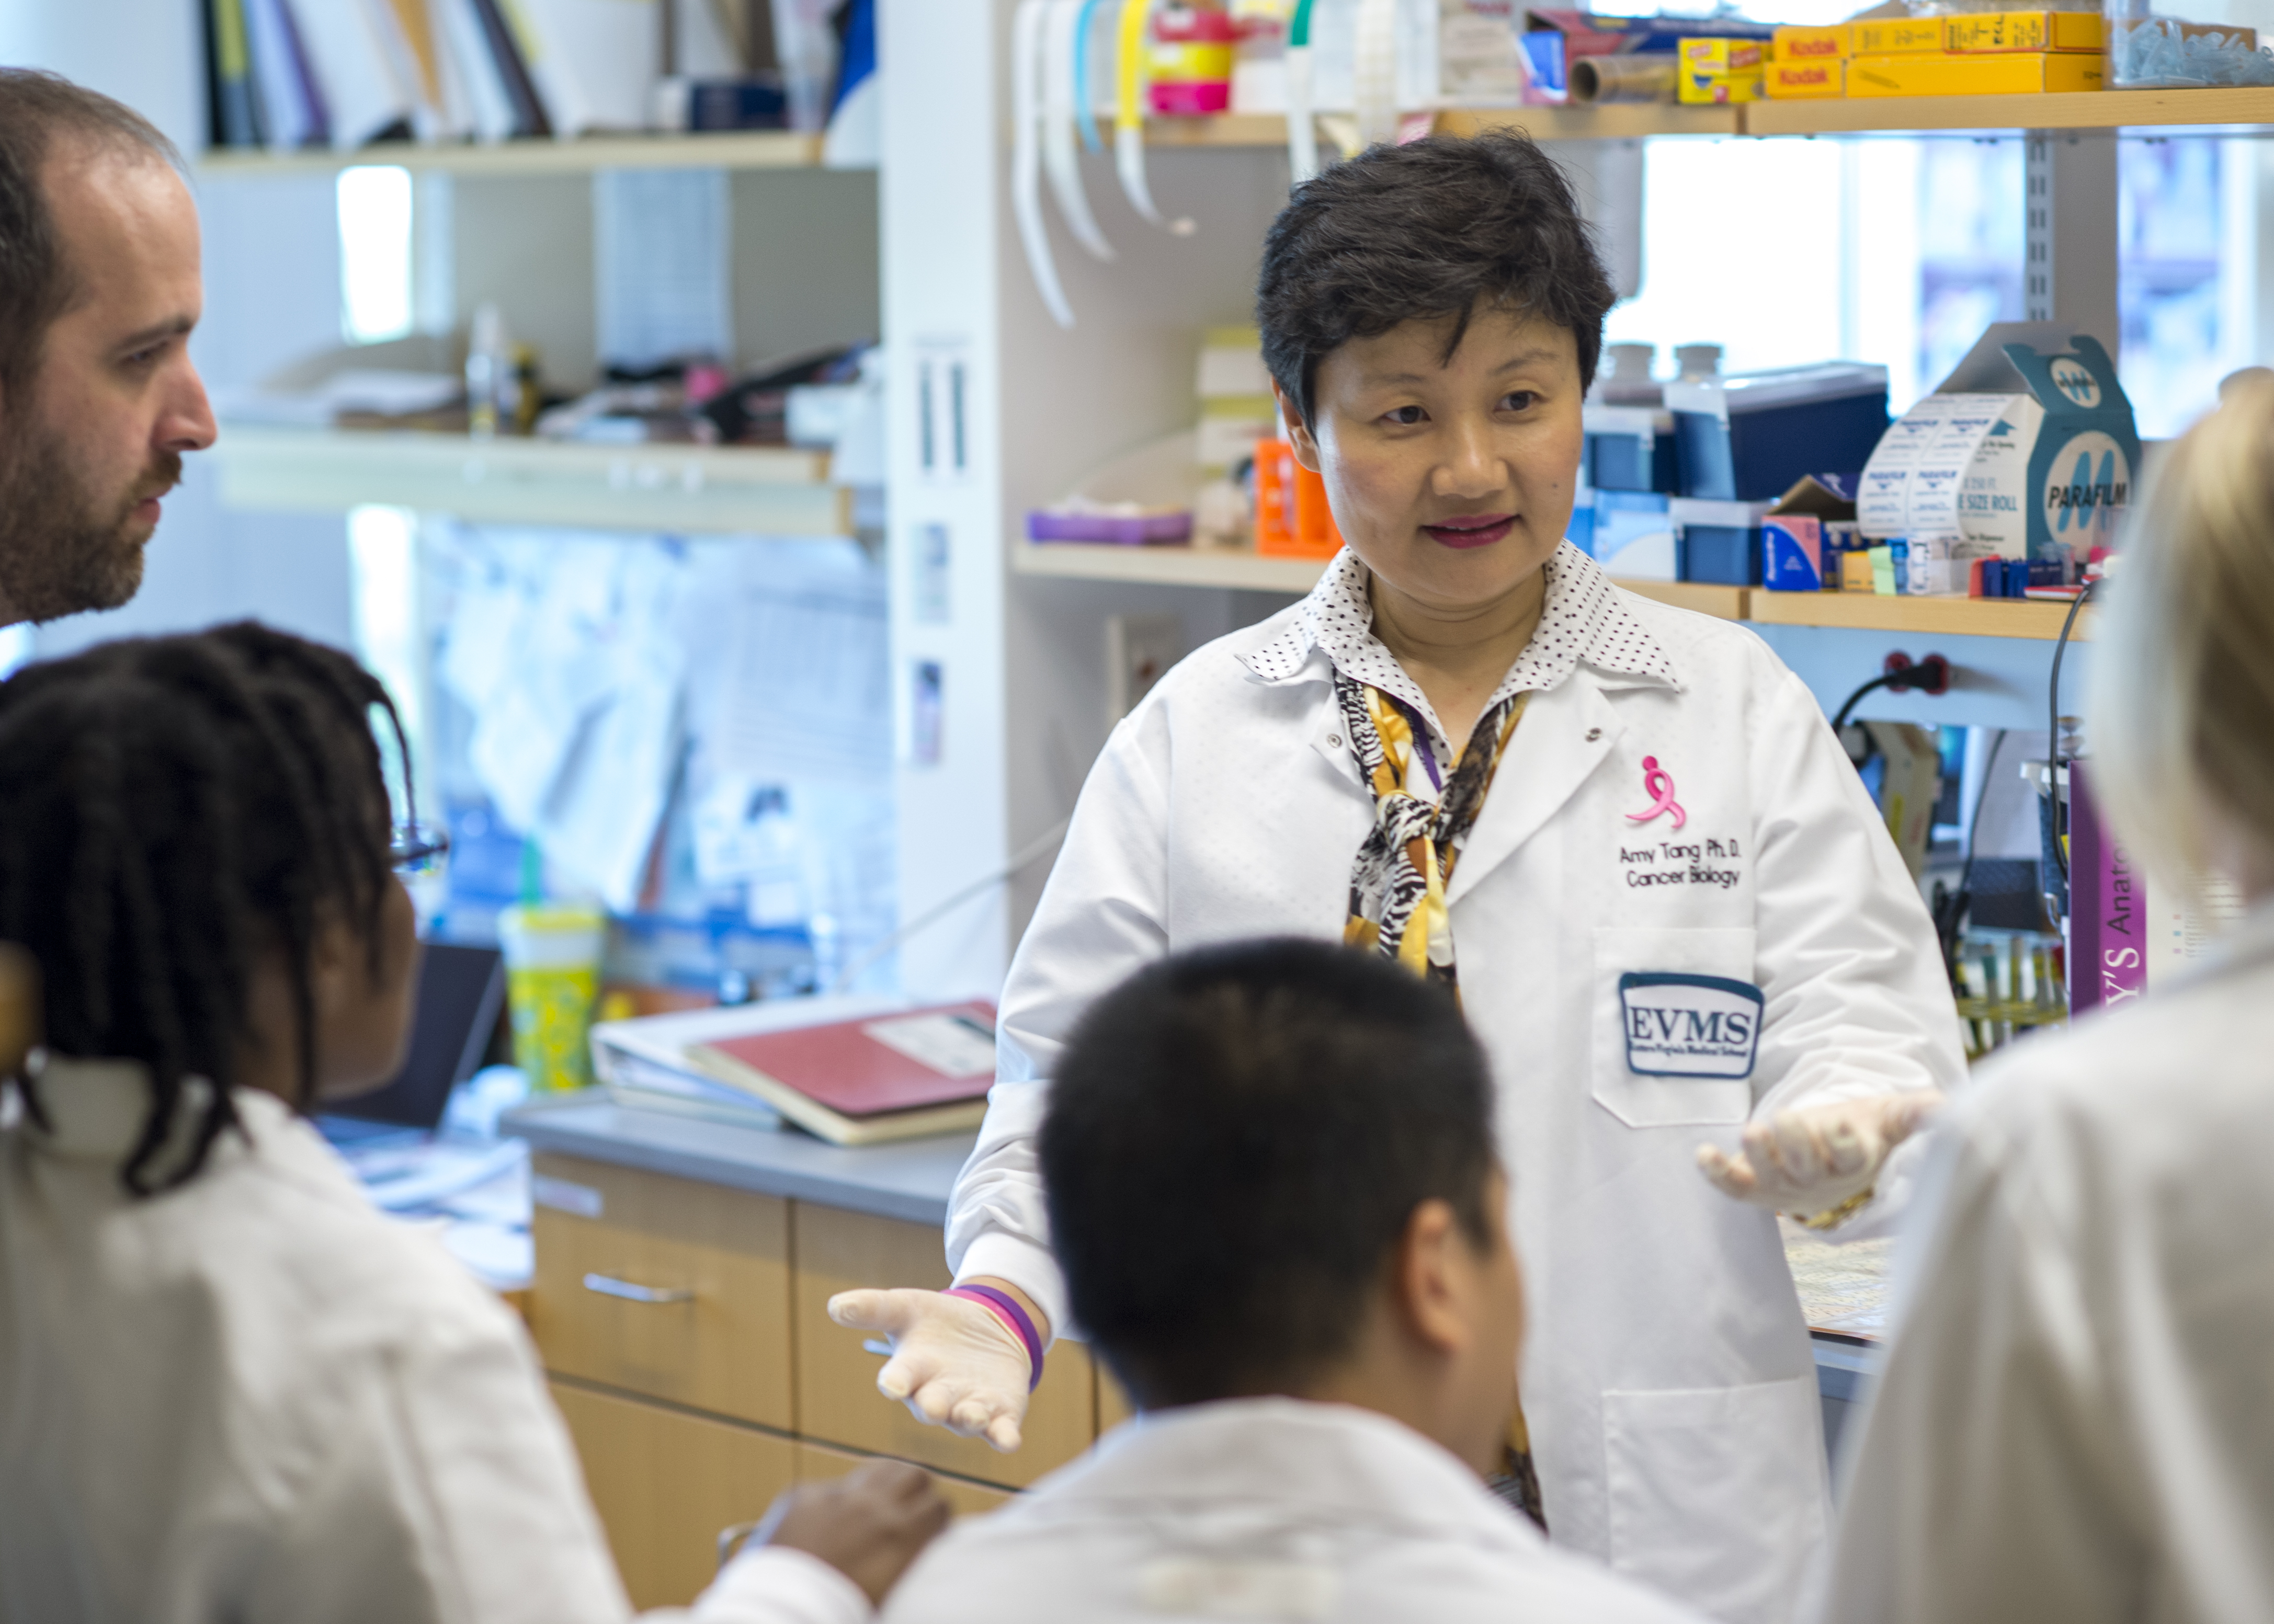 Dr. Tang stands with her research assistants in her lab as shw instructs them.